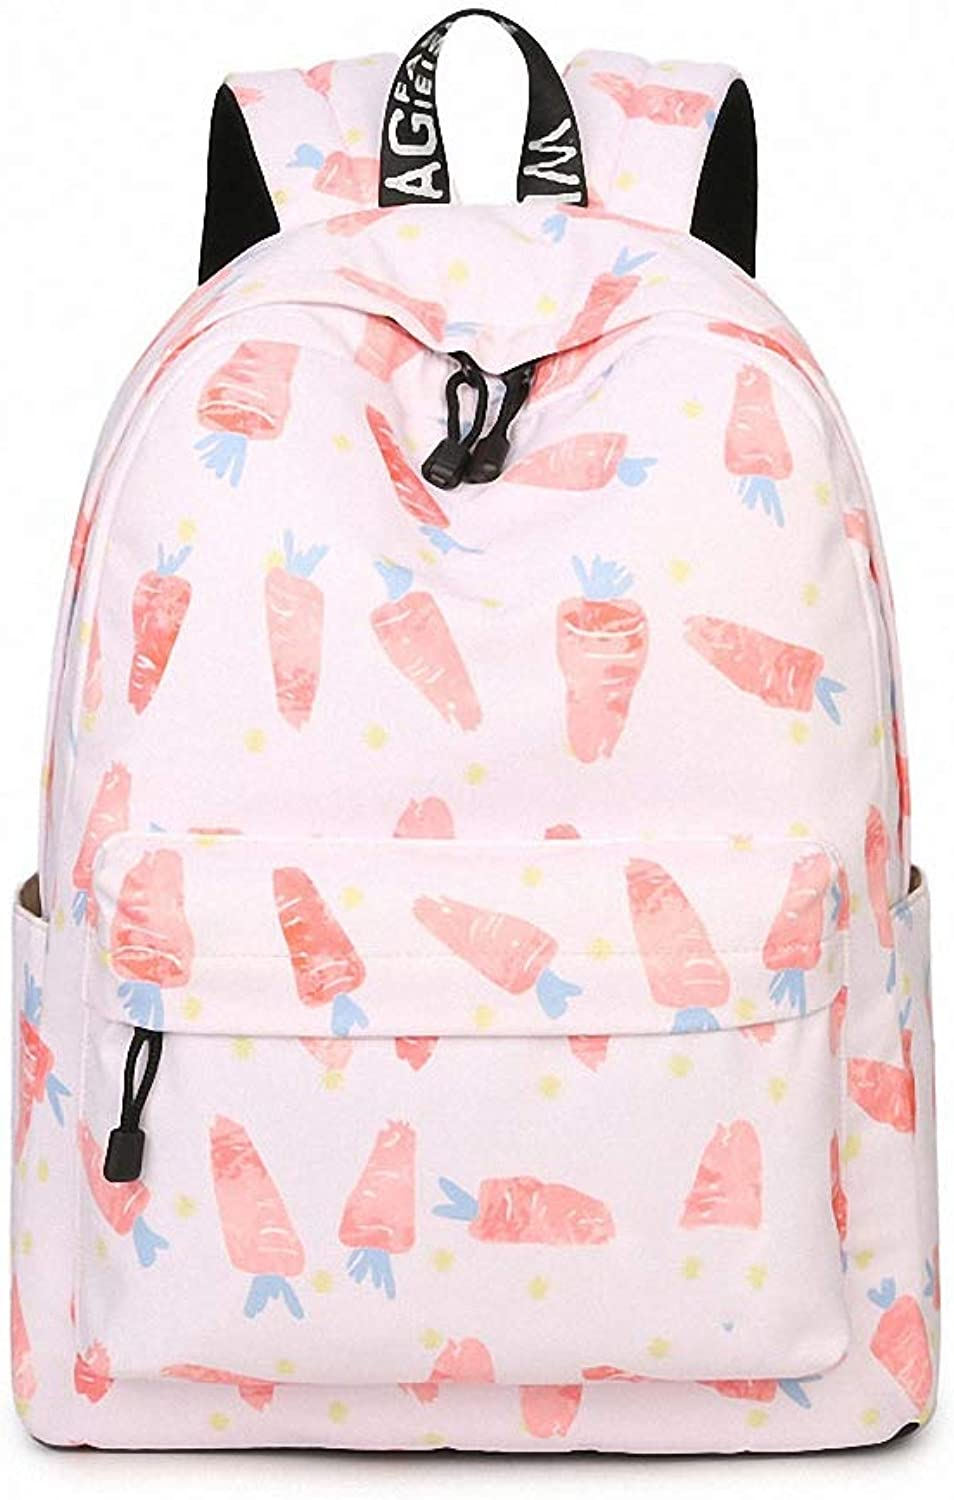 Daypacks & Casual Bags New Waterproof Fabric Women Backpack Cute Mermaid Pattern Printing Large Capacity Girls College Knapsack Black with White 14 Inches